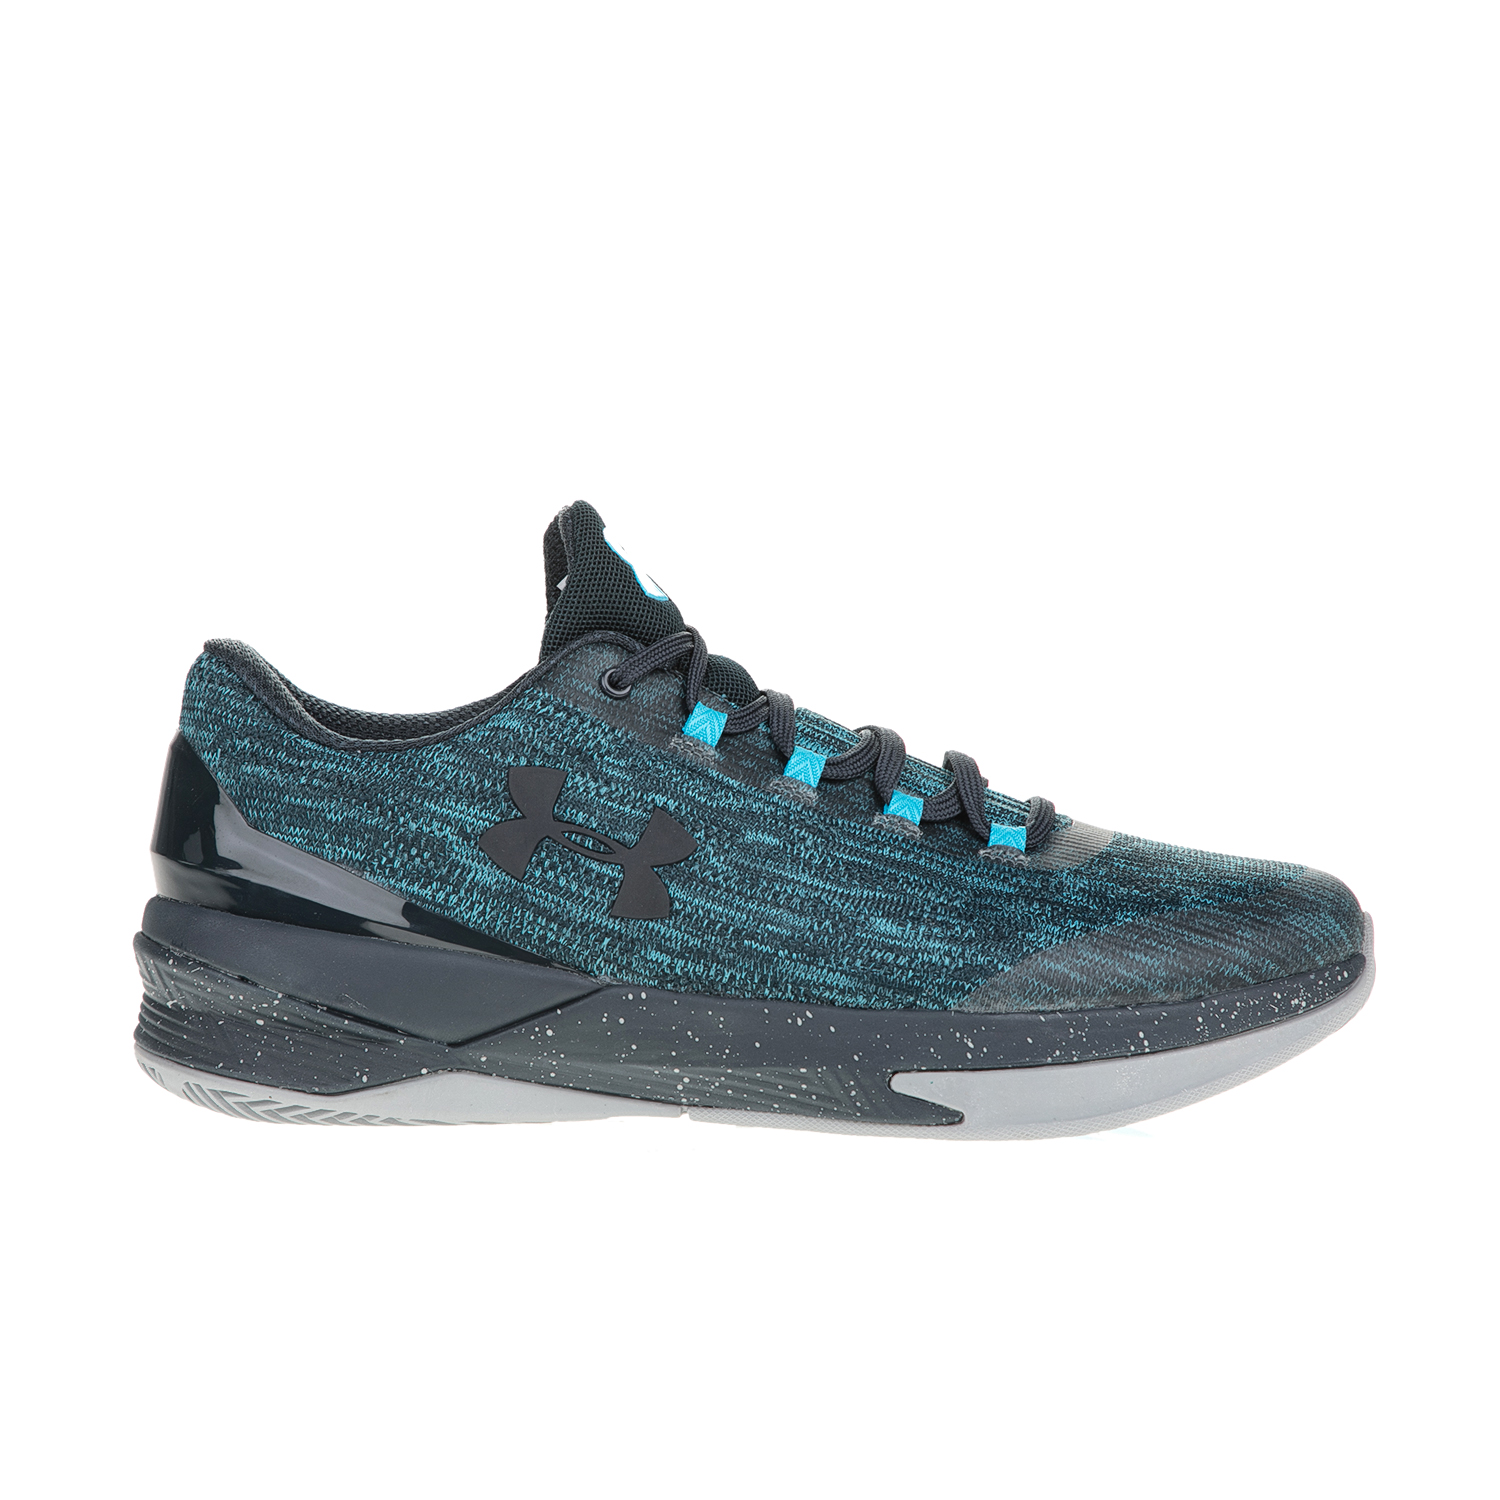 UNDER ARMOUR – Ανδρικά παπούτσια UA Charged Controller μπλε 7a8188d849e